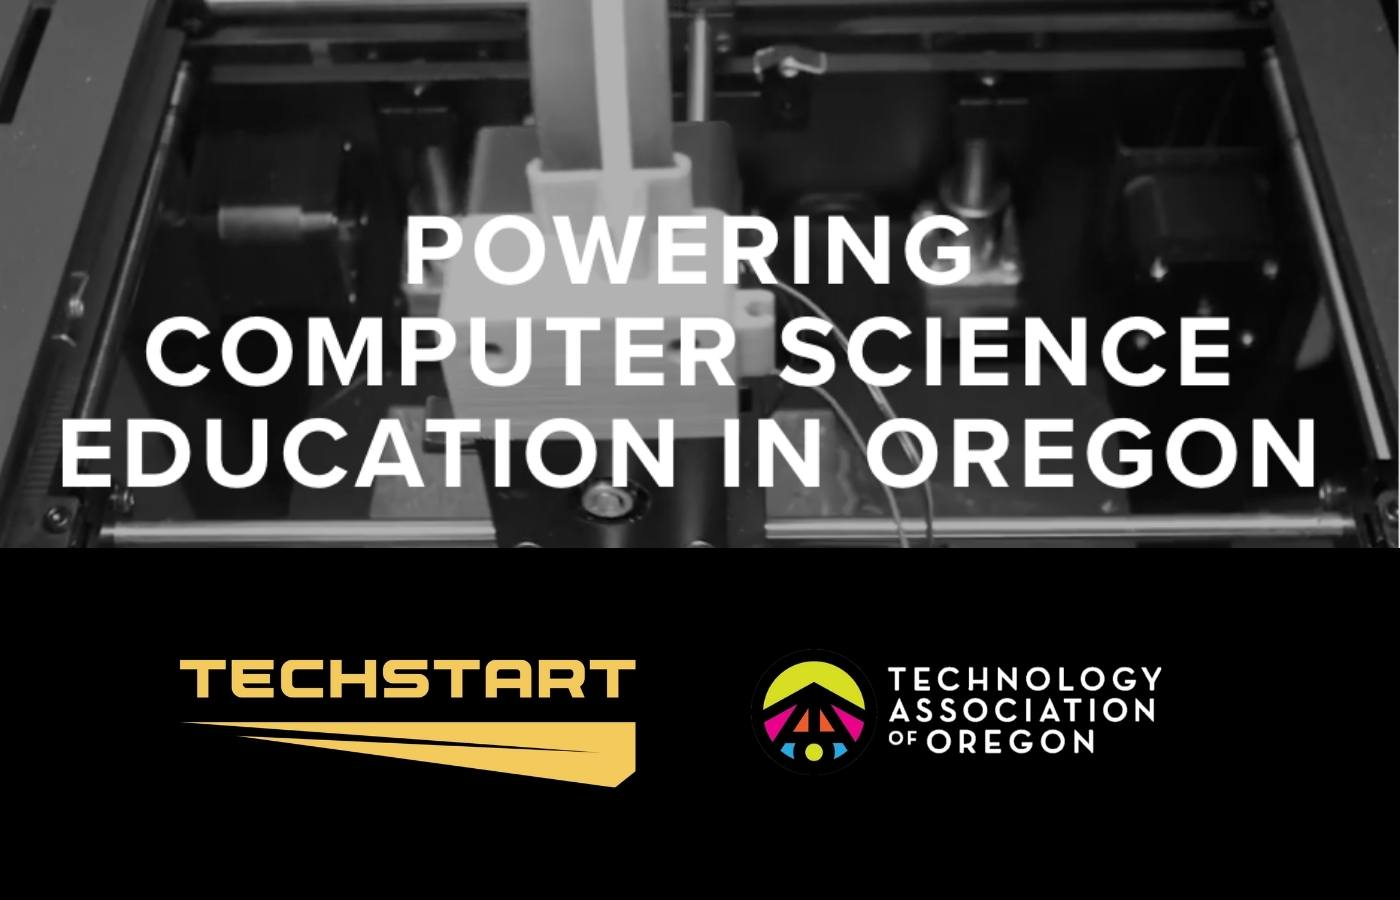 TechStart and TAO Form Alliance to Advance Computer Science Education